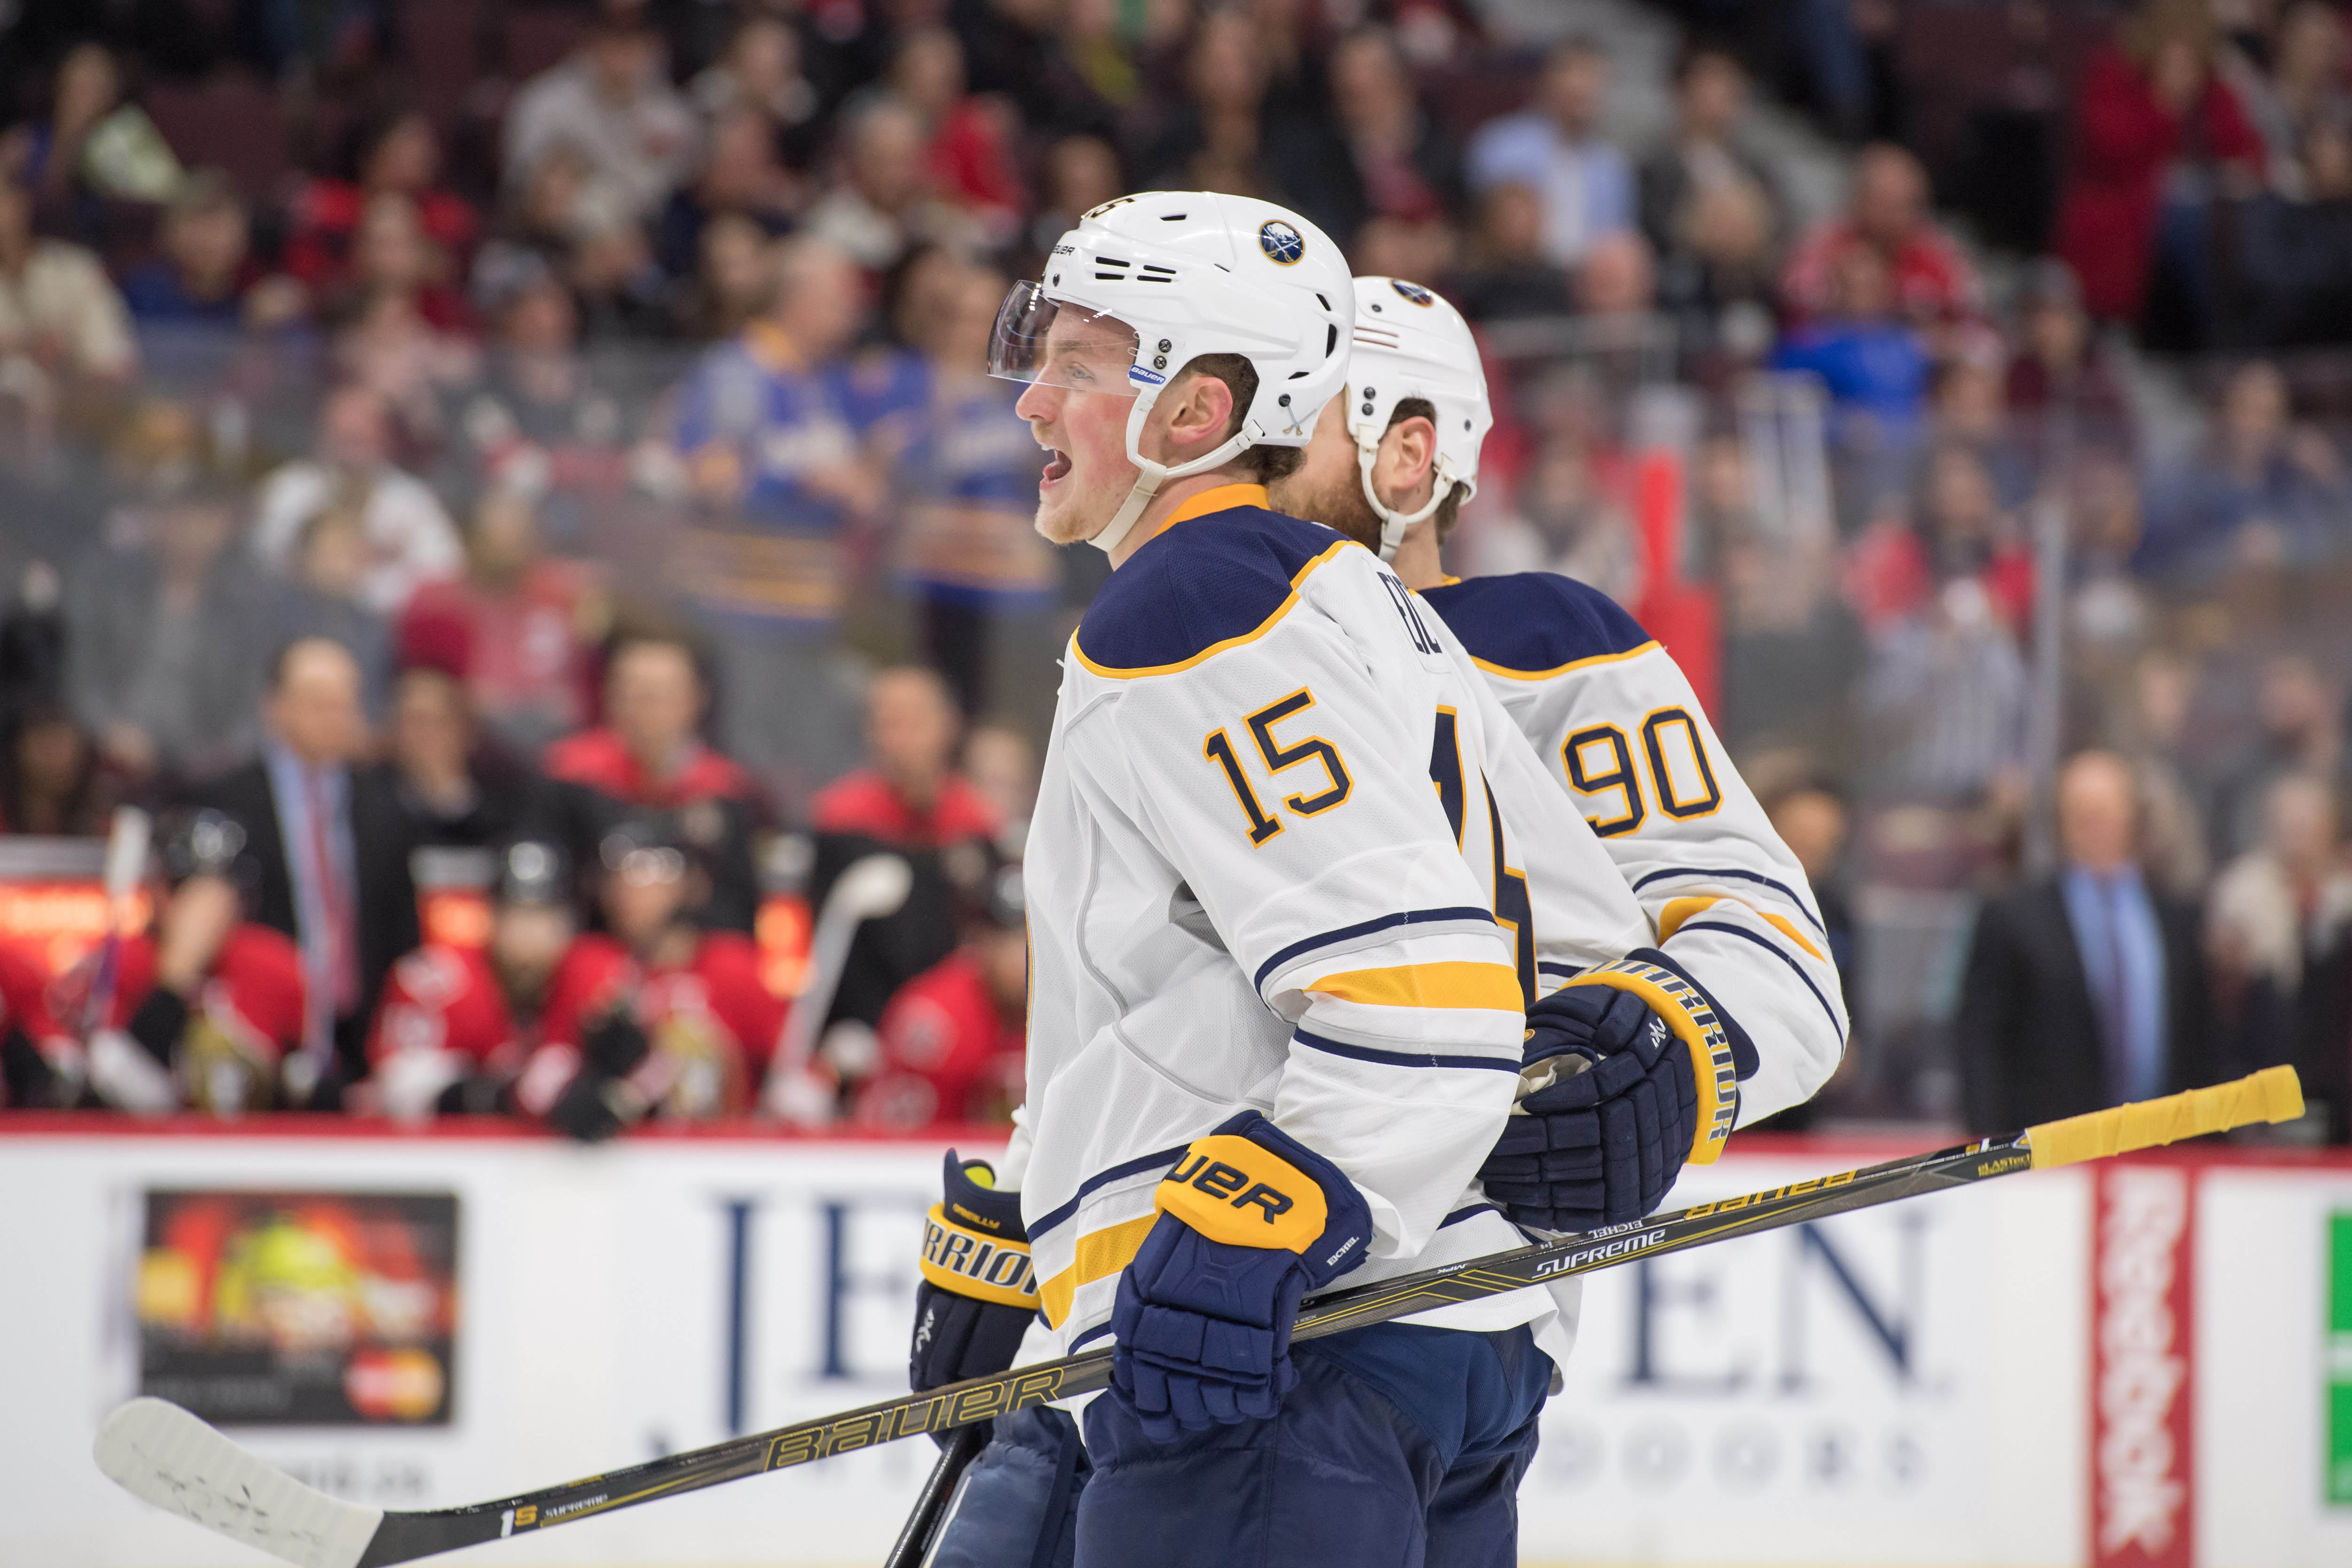 Jack Eichel returned to the lineup Tuesday and celebrated his first goal of the season. (USA Today Sports)